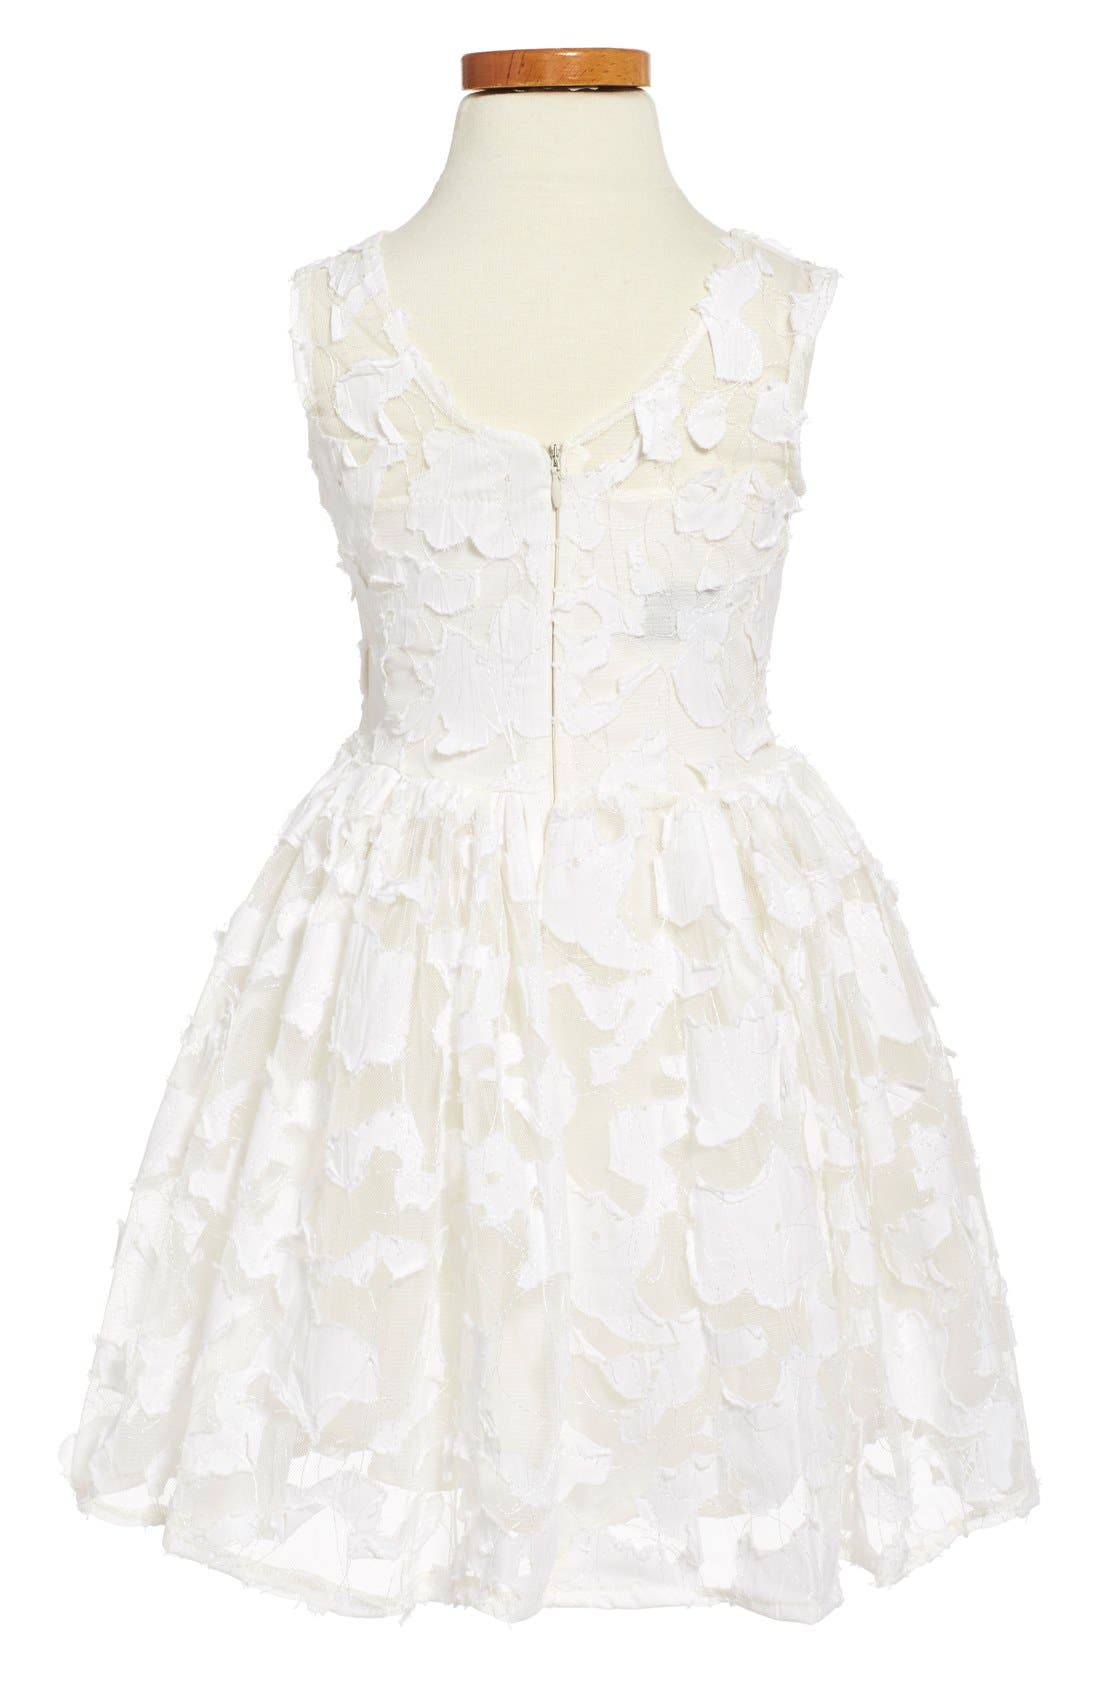 Alternate Image 2  - Fiveloaves Twofish 'Pretty in Ivory' Party Dress (Toddler Girls, Little Girls & Big Girls)